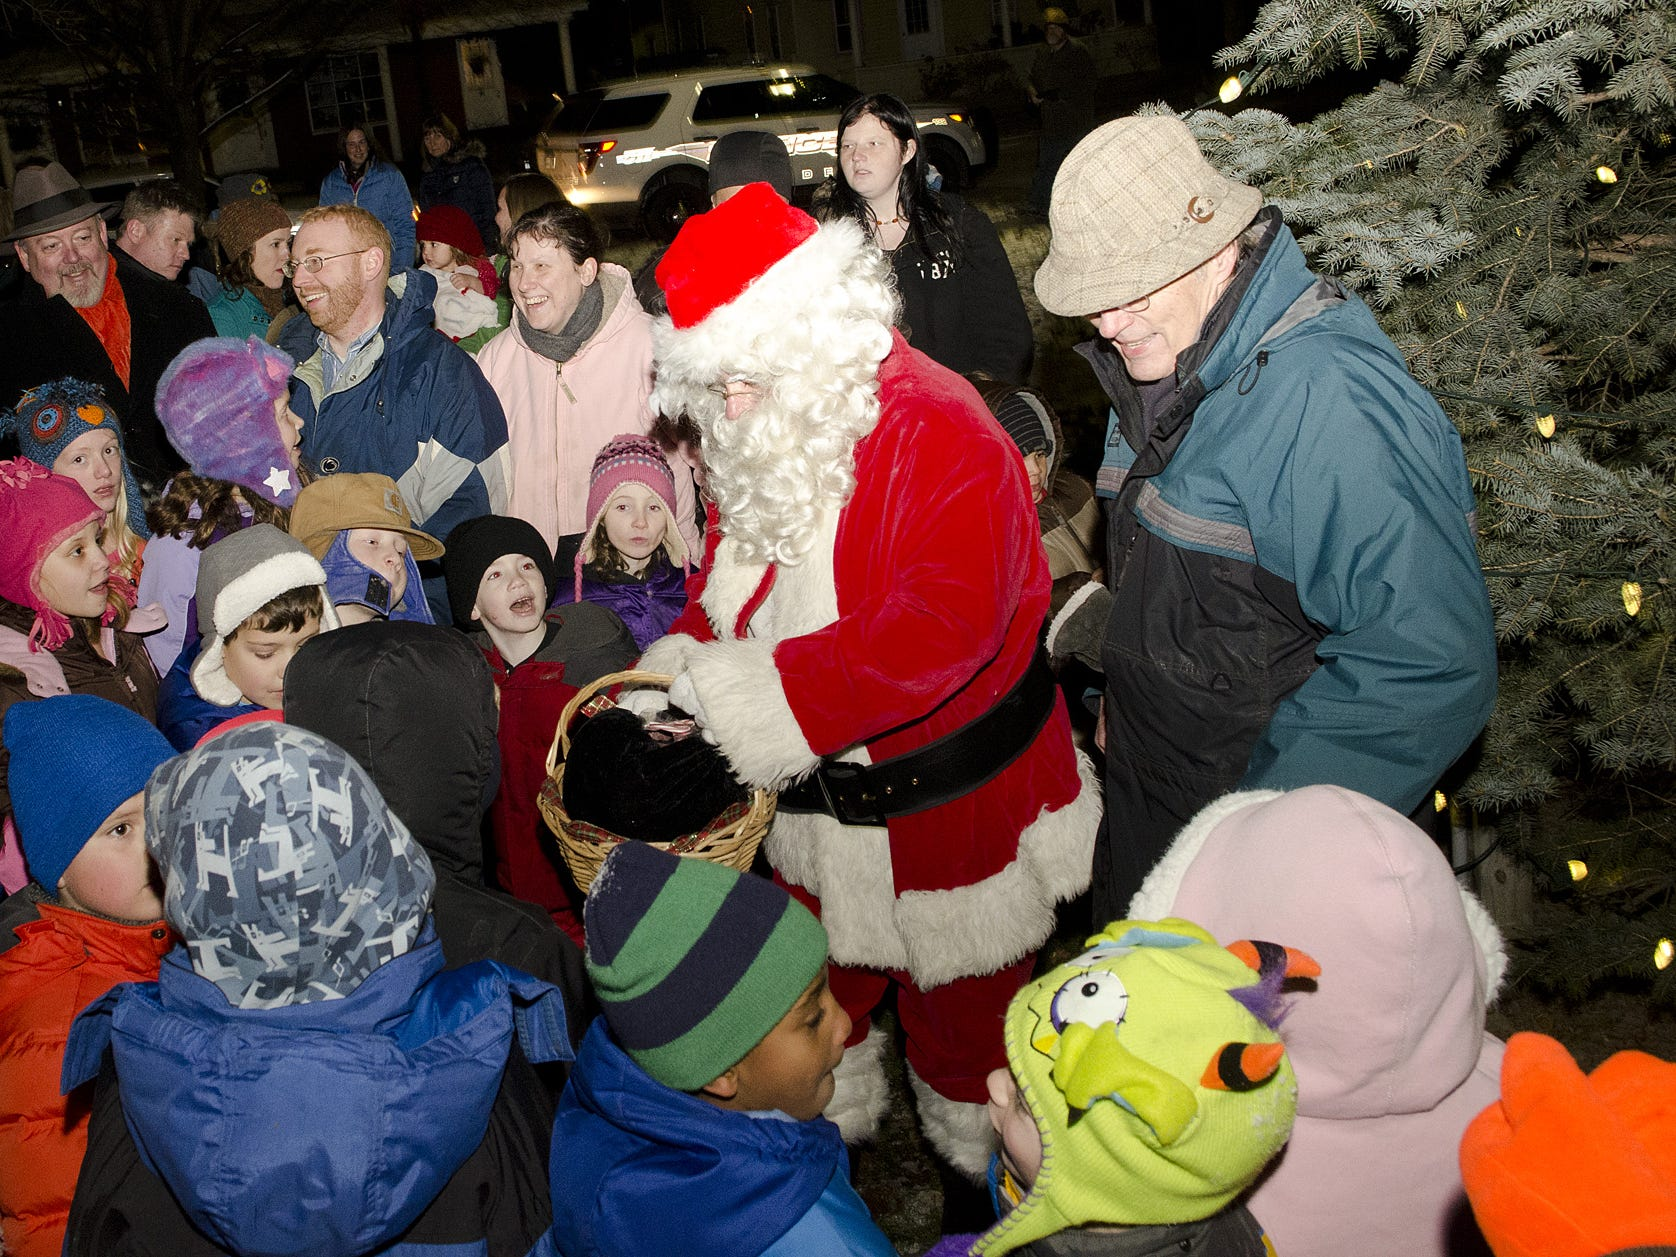 Santa Claus hands out candy to children in 2013 at the annual holiday tree lighting festival in Dryden. After switching on the tree, he went inside the Methodist Church for photos.